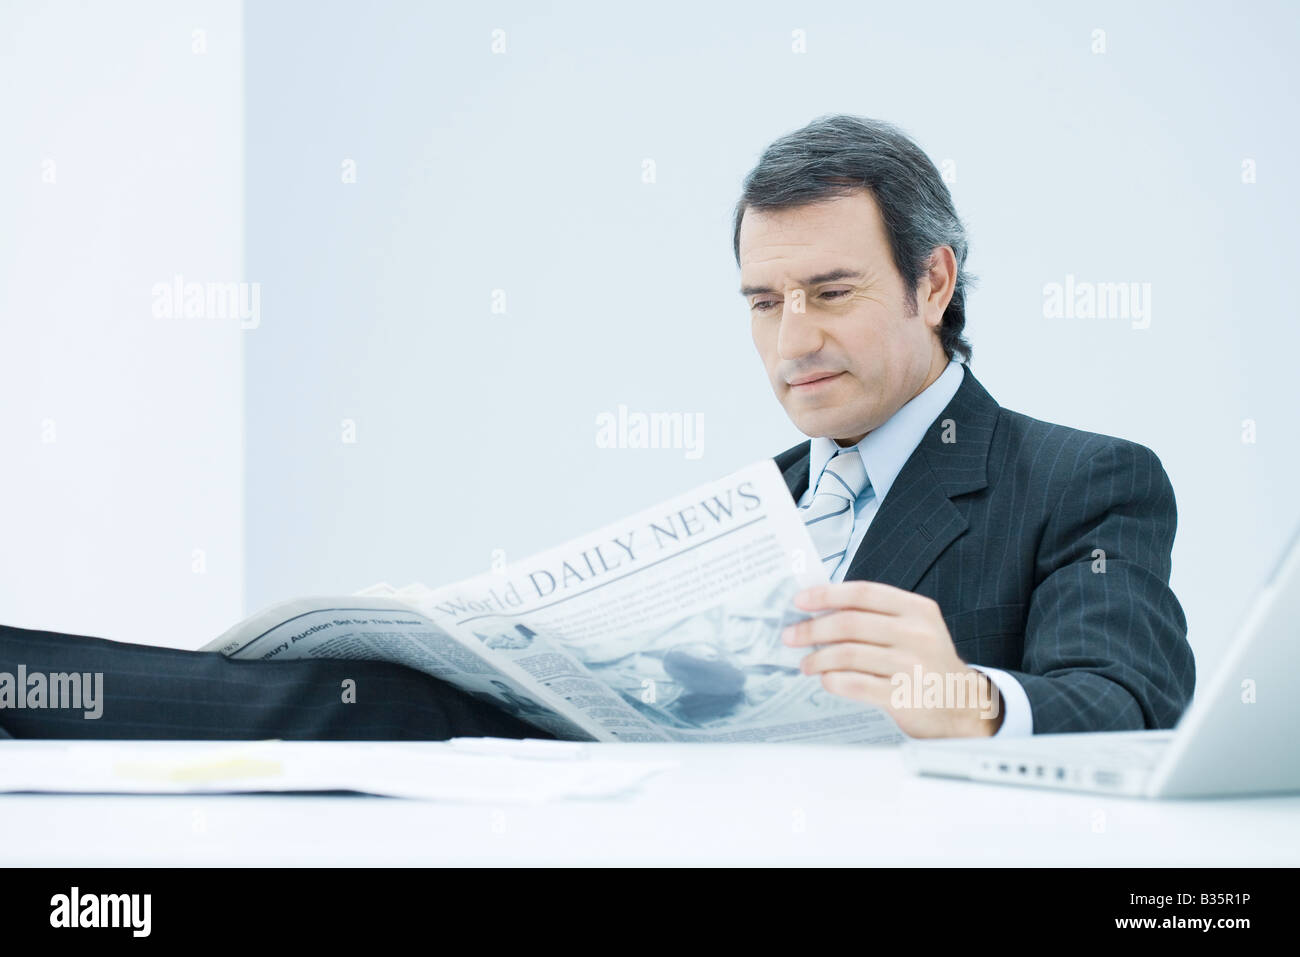 Businessman sitting at desk, reading newspaper, looking down with concerned expression - Stock Image